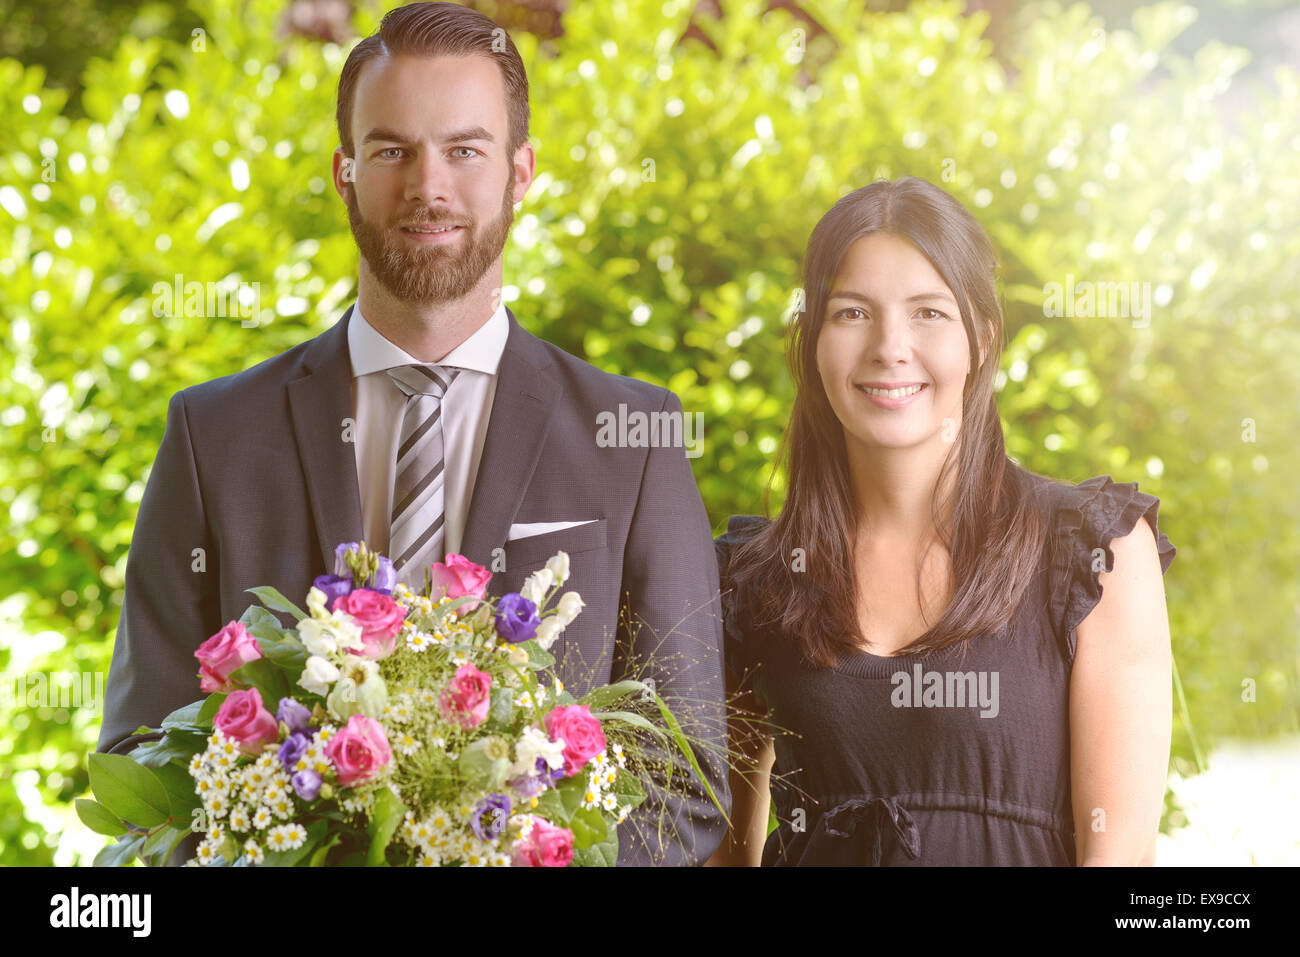 Happy Young Couple at the Garden with Bouquet of Assorted Fresh Flowers, Smiling at the Camera. - Stock Image